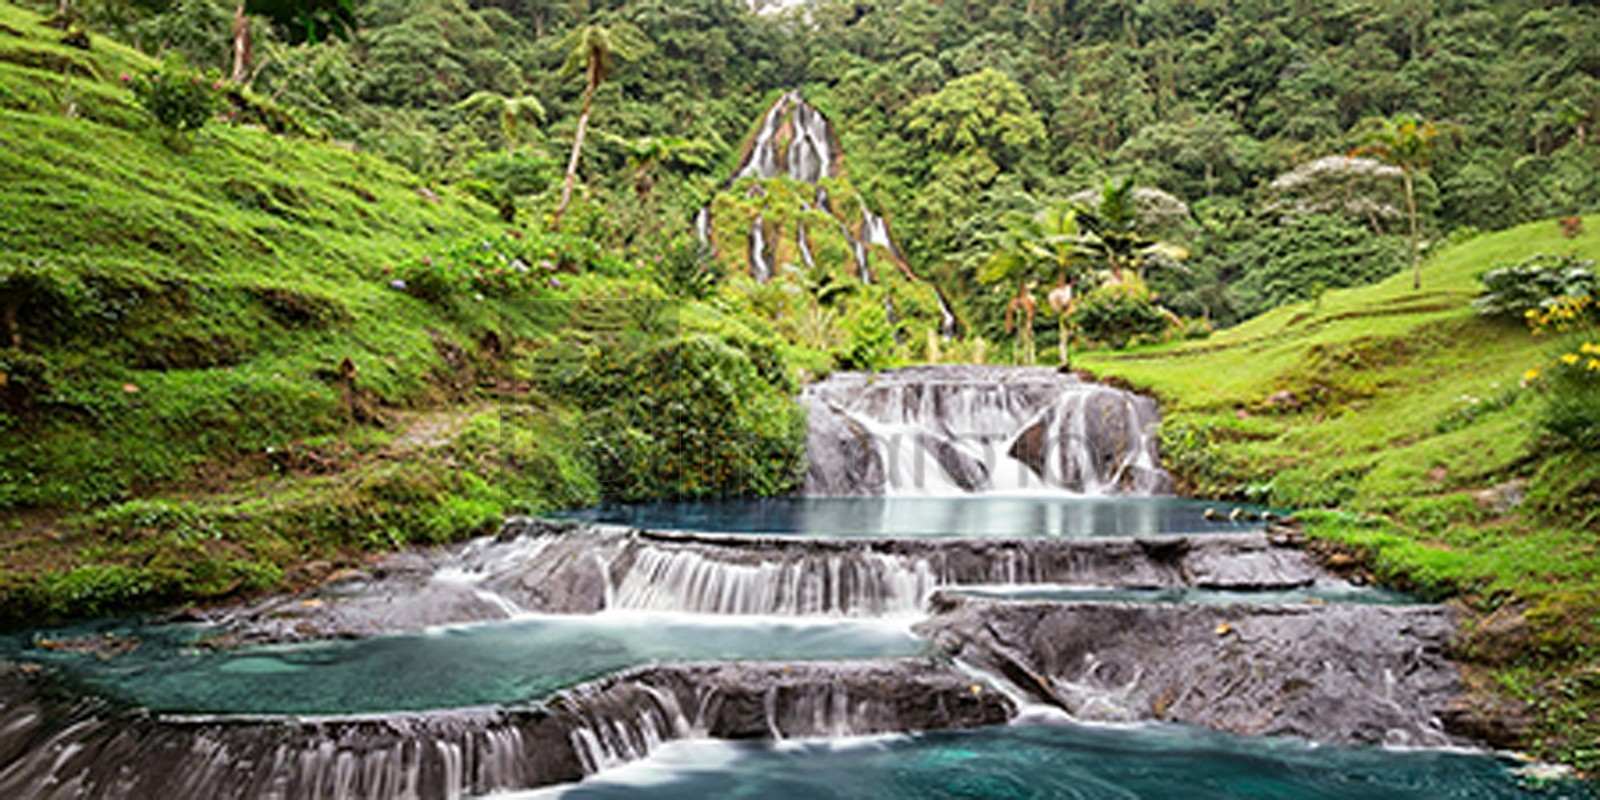 Pangea Images - Waterfall in Santa Rosa de Cabal, Colombia (detail)